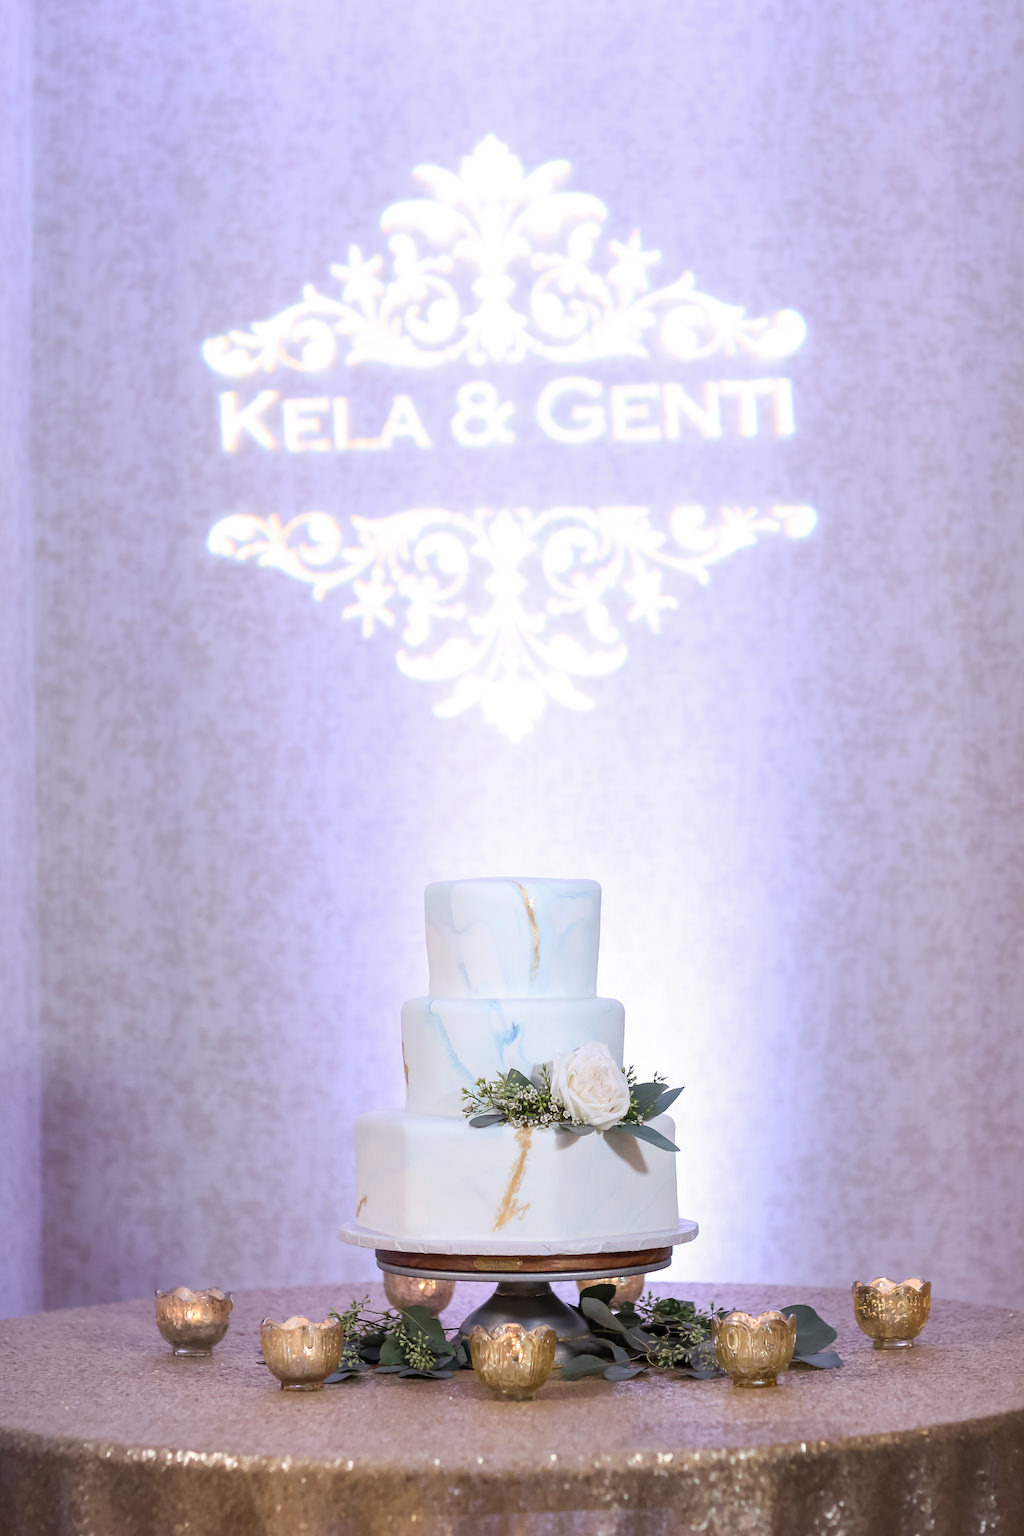 Three Tier Round White Blue and Gold Marble Wedding Cake with White ROse and Greenery on Gold Cake Stand, with Custom GOBO Projection, and Gold Sequin Linen with Votive Candles   Tampa Bay Waterfront Hotel Wedding Venue Hilton Clearwater Beach